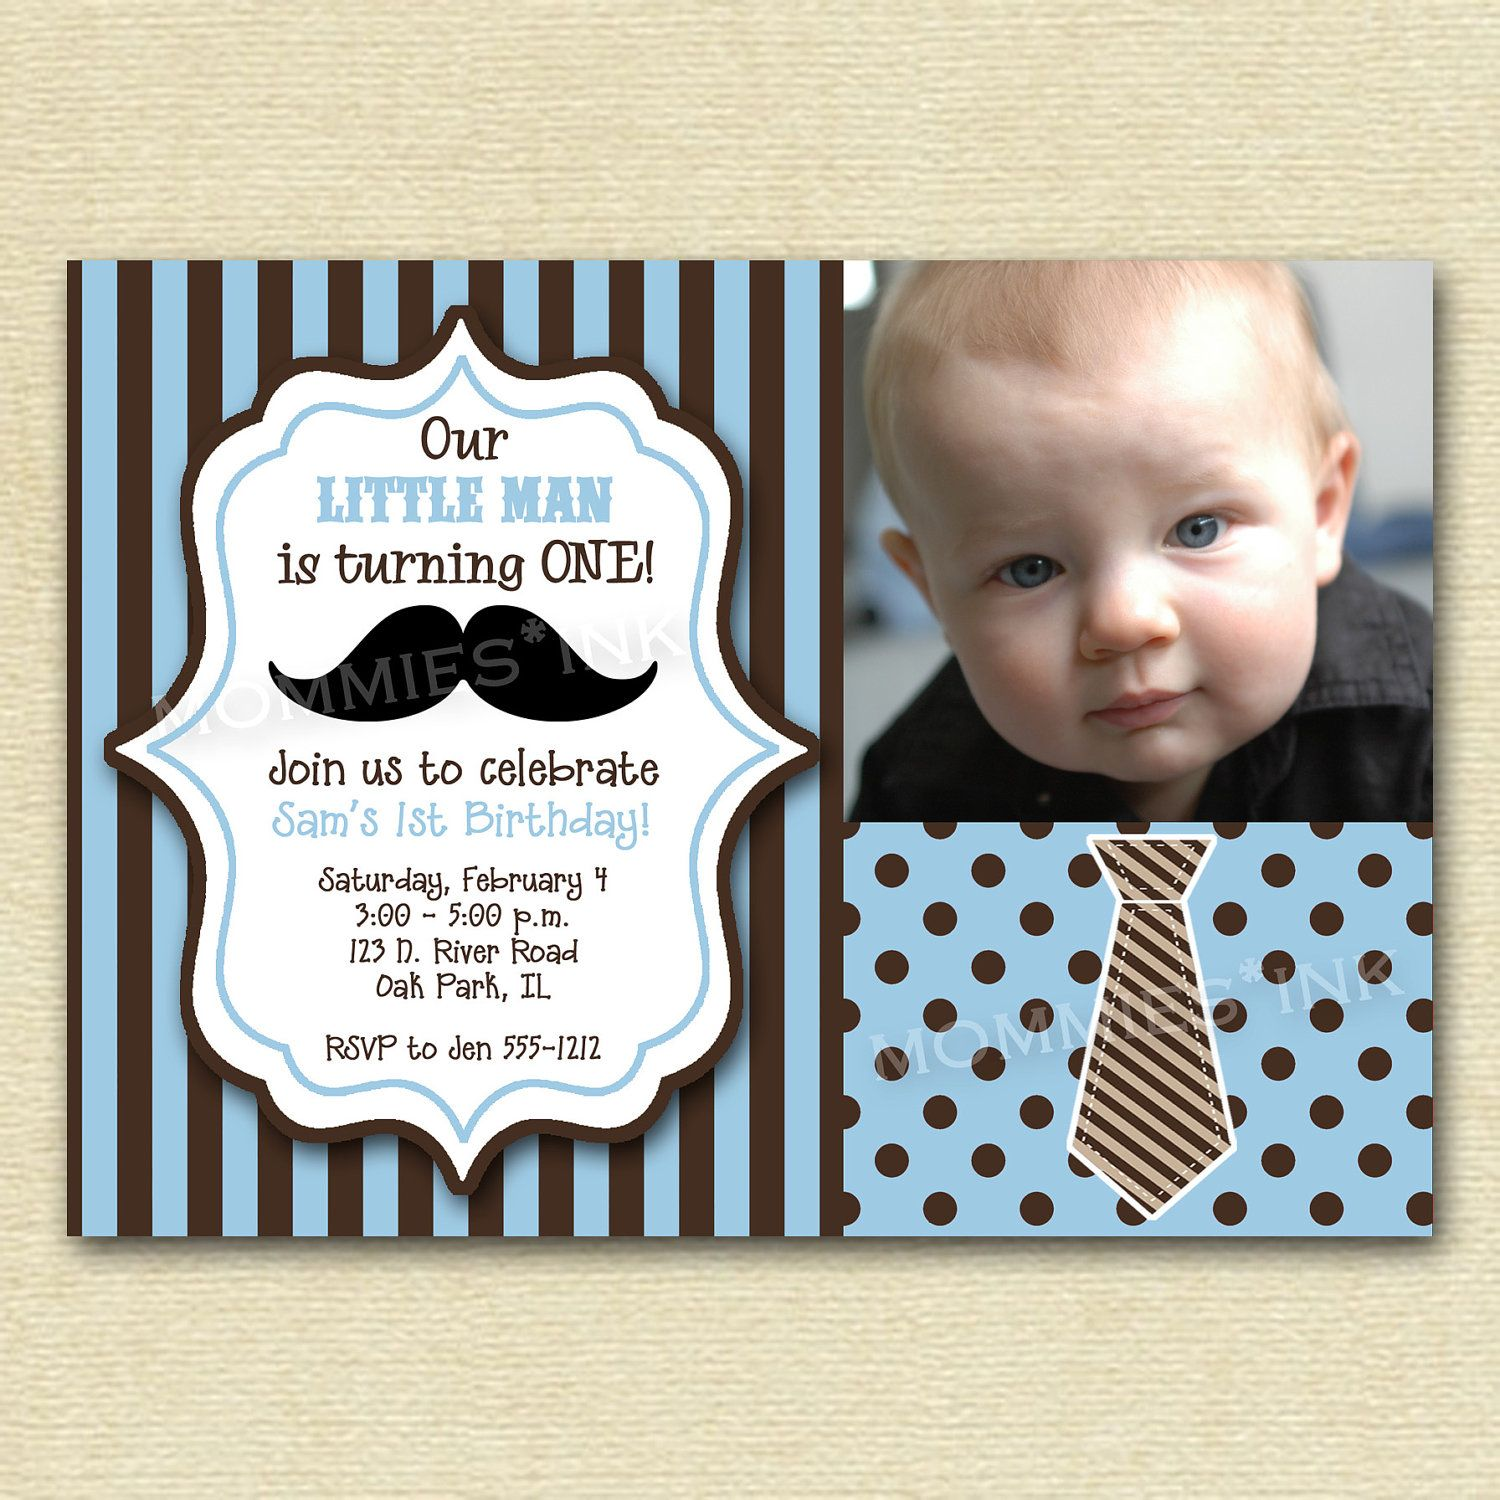 Awesome Little Man Birthday Party Invitations Mustache Birthday Party Mens Birthday Party Little Man Birthday